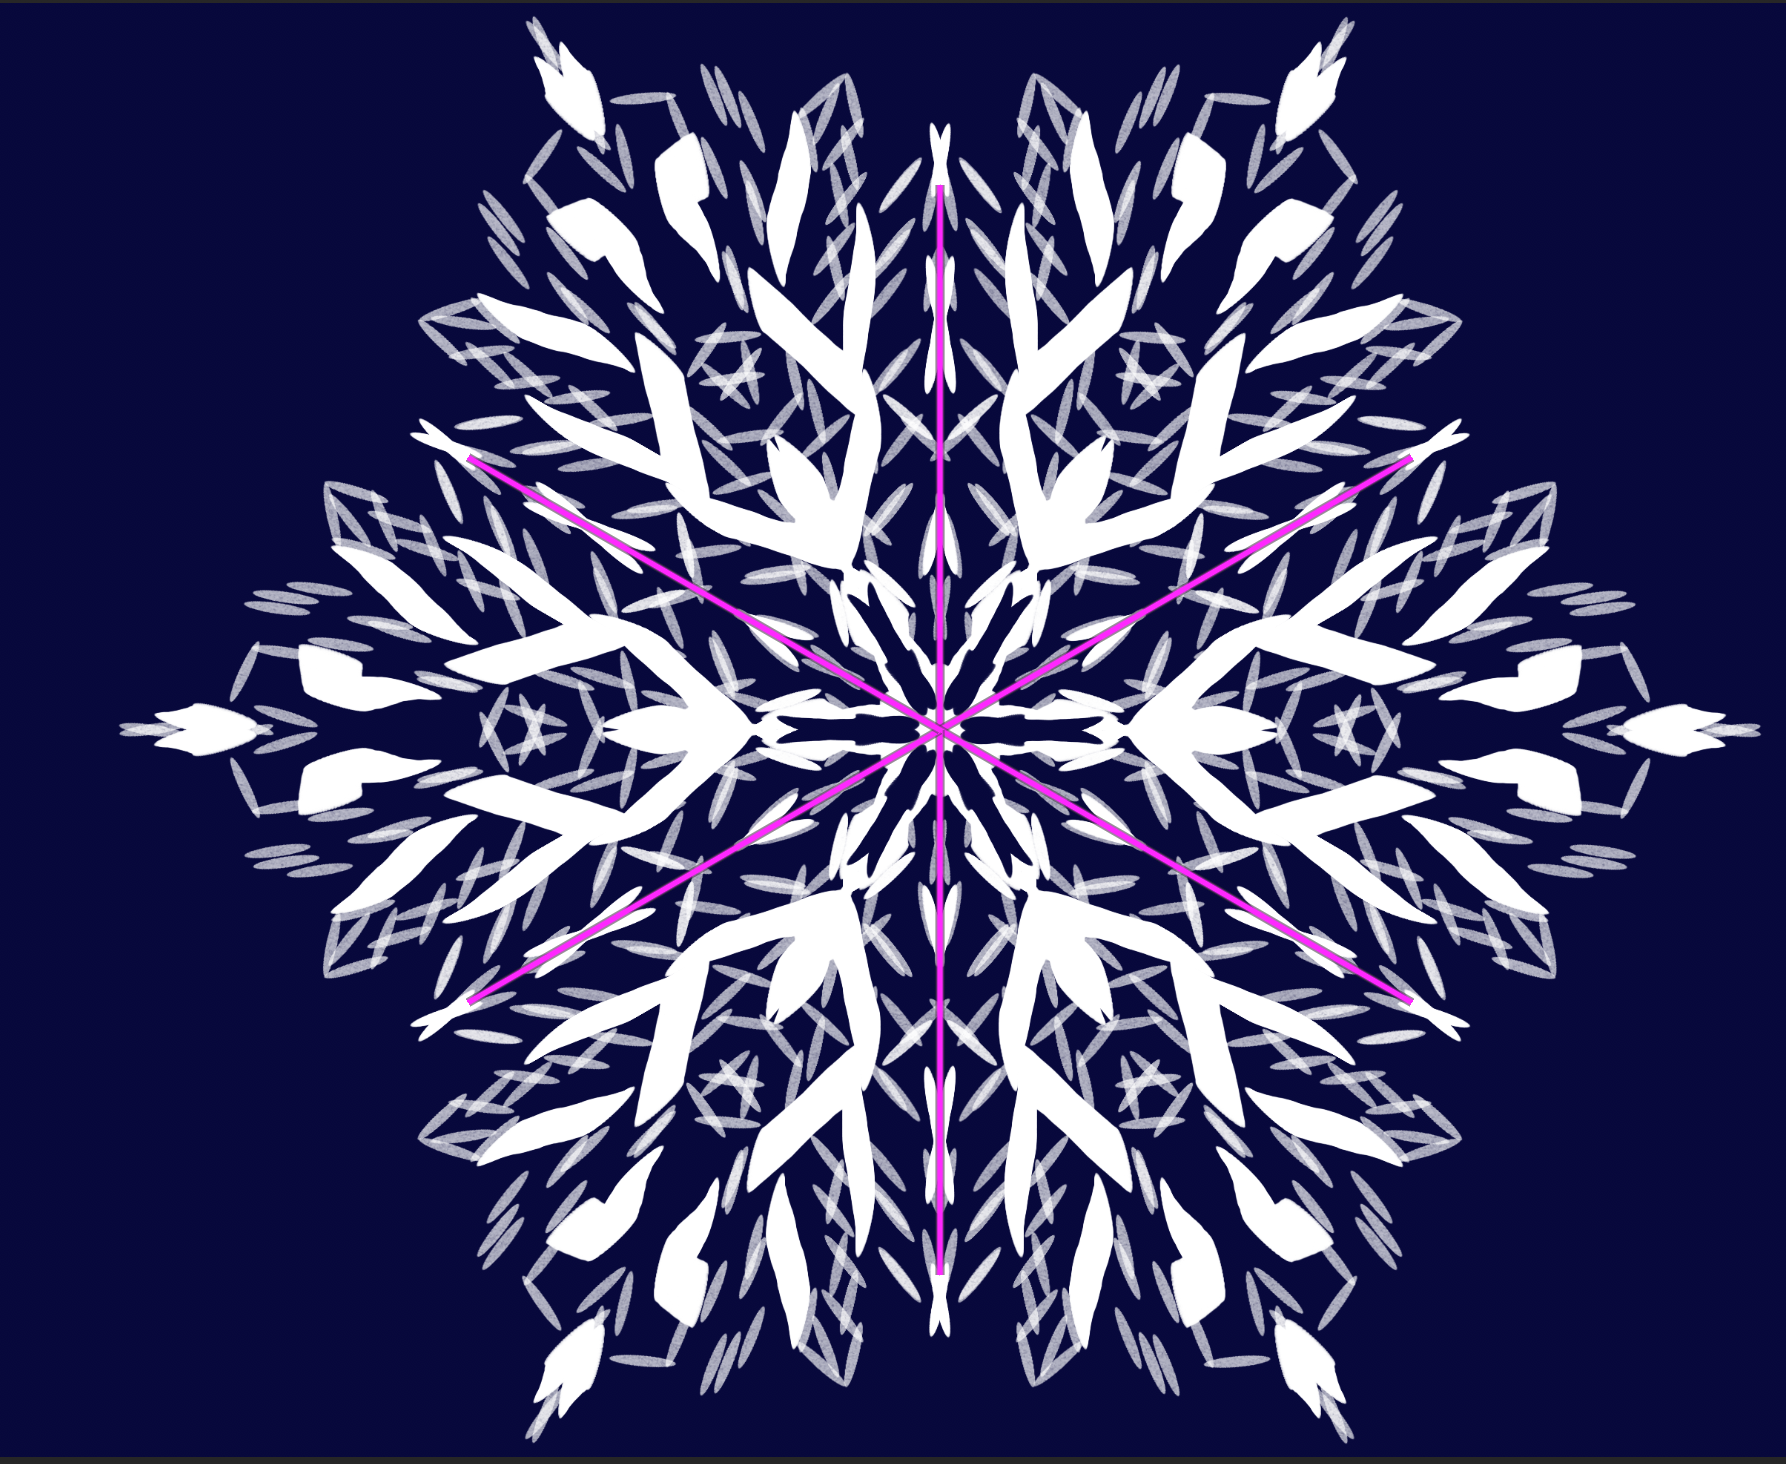 A snowflake drawn with the Mandala effect in Photoshop